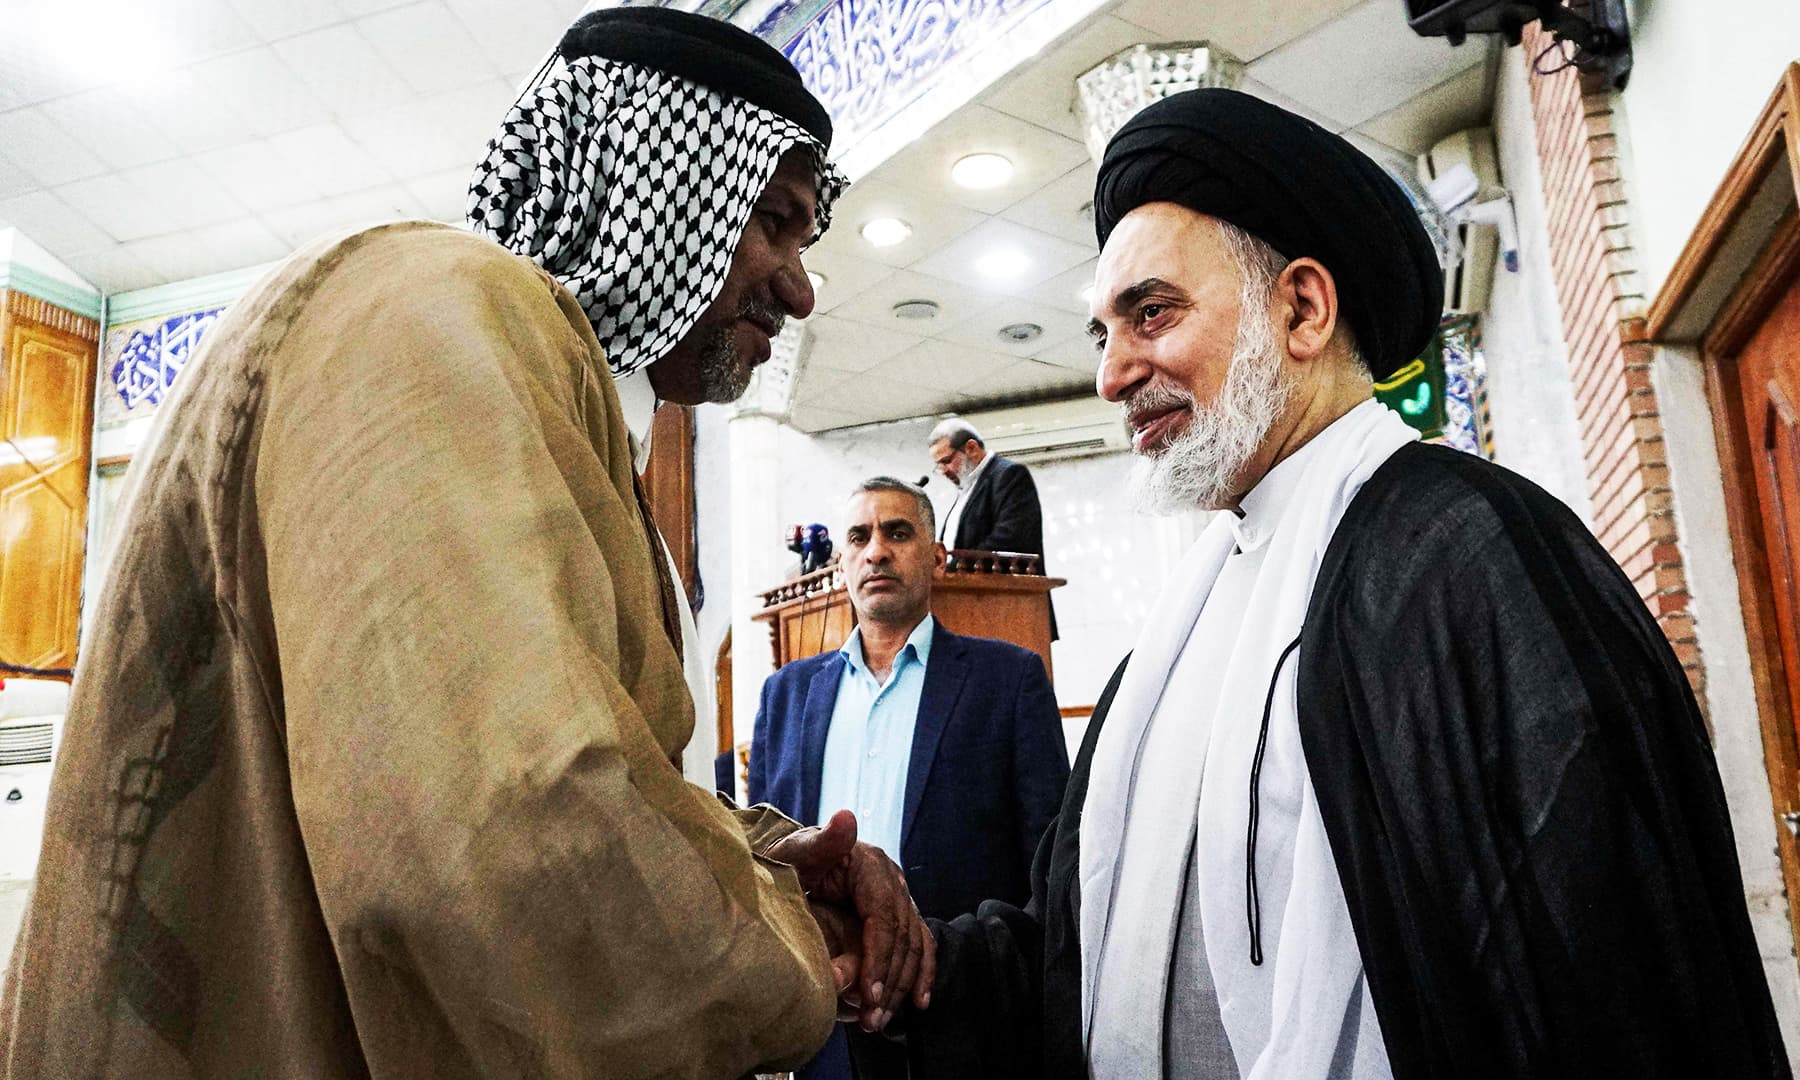 A man shakes hands with a Shia cleric while at a mosque for Eidul Azha prayers, in the central Iraqi shrine city of Najaf south of the capital on Monday. — AFP